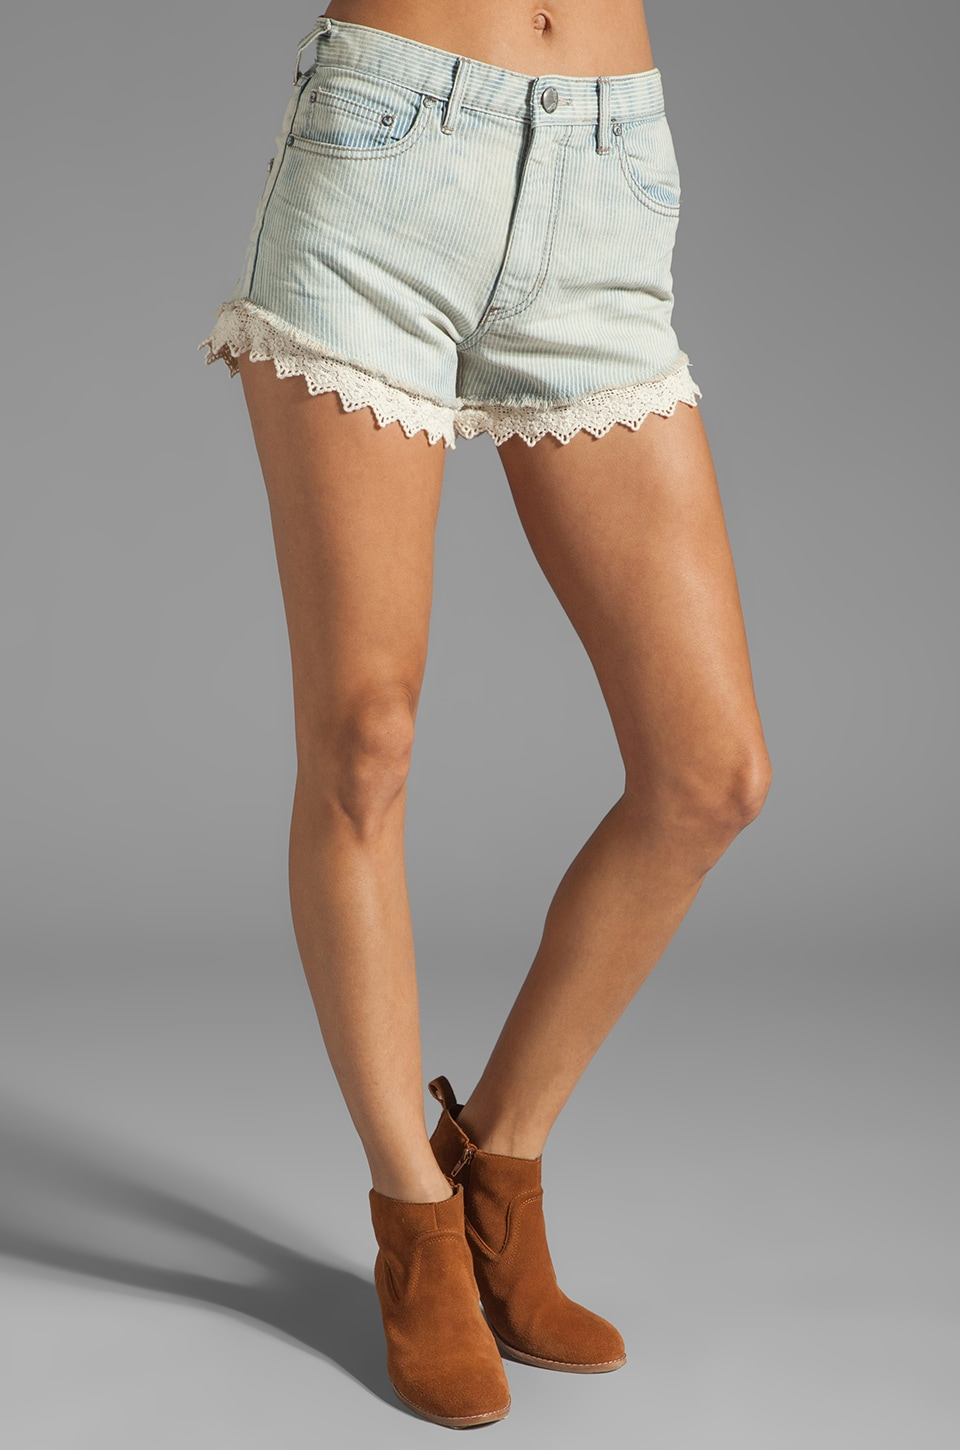 Free People Railroad Lacey Cut Offs in Pacific Wash